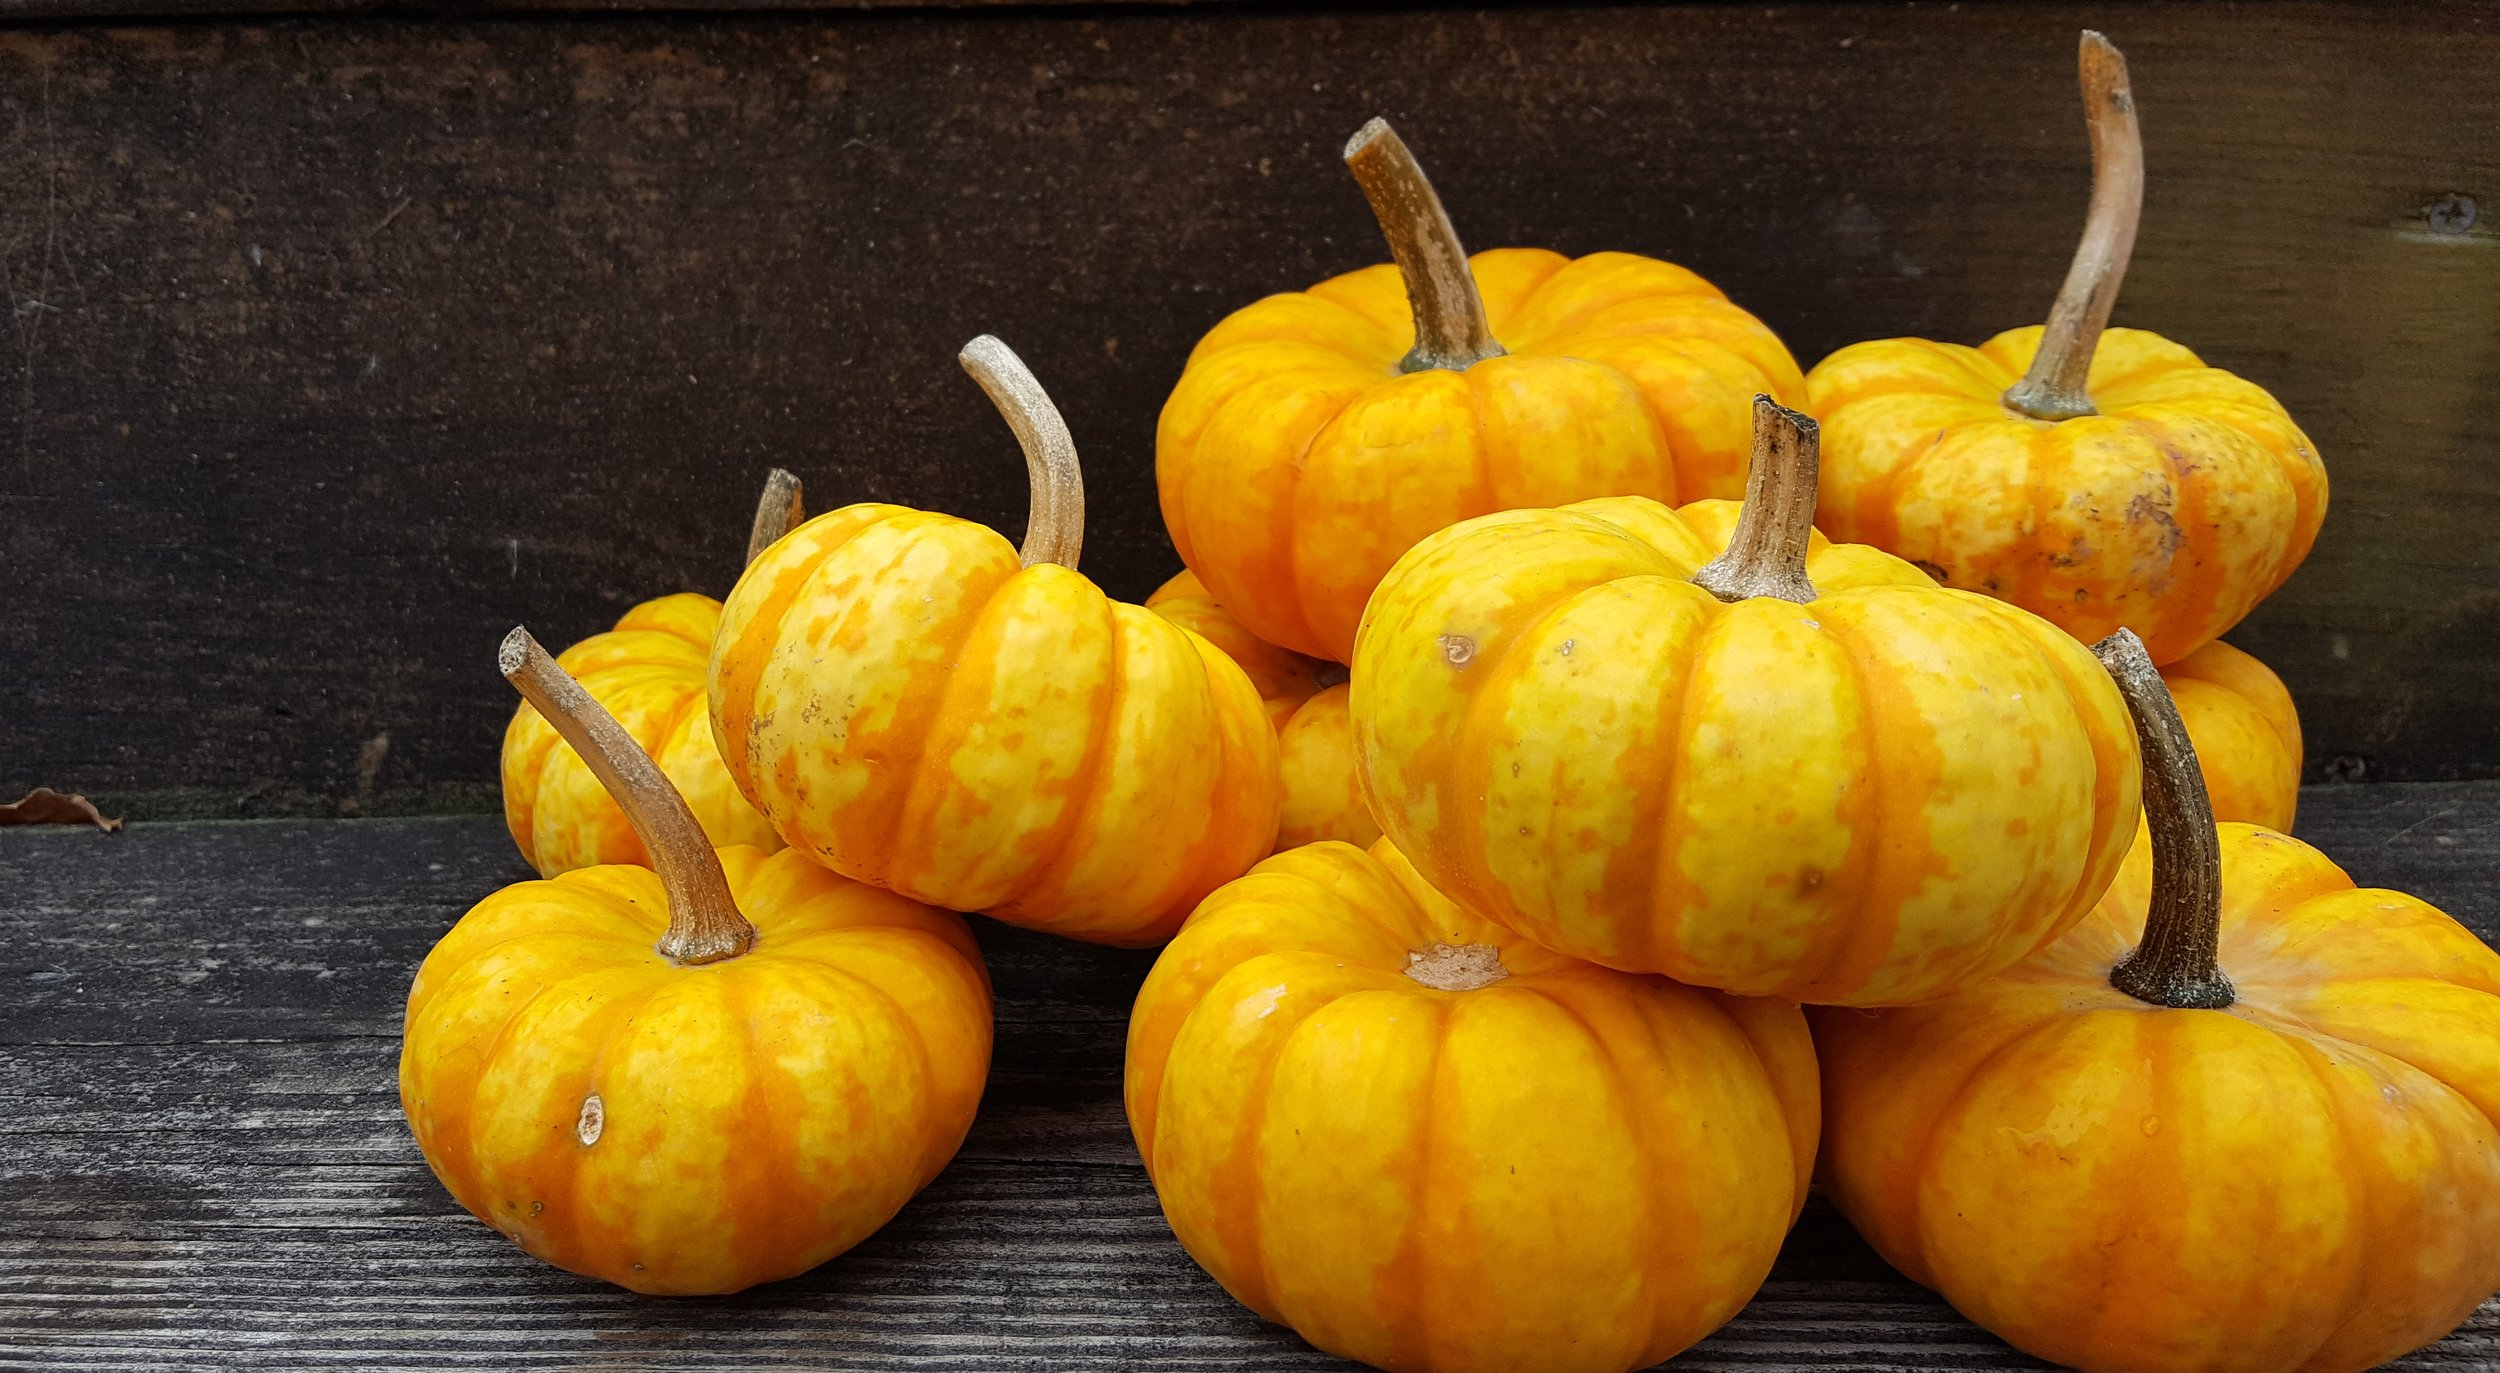 I'm not a fan of pumpkins, but these little fellas are so full of color.